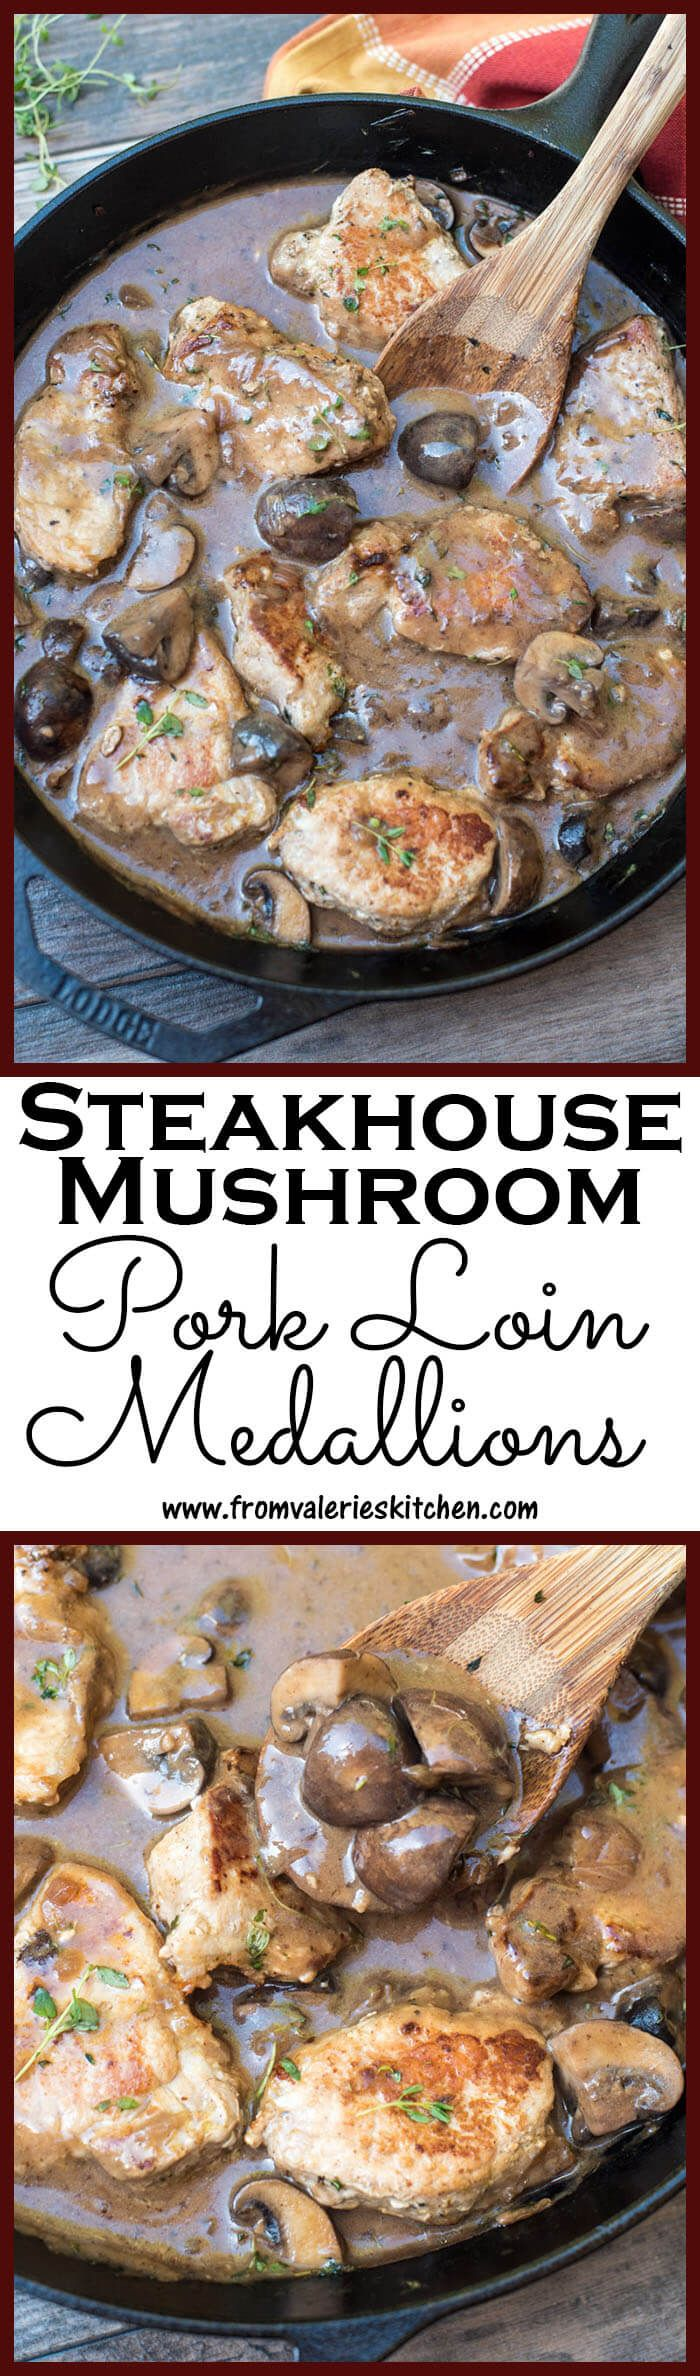 What's for dinner at your house tonight?   Steakhouse Mushroom Pork Loin Medallions sound like a great idea. #ad